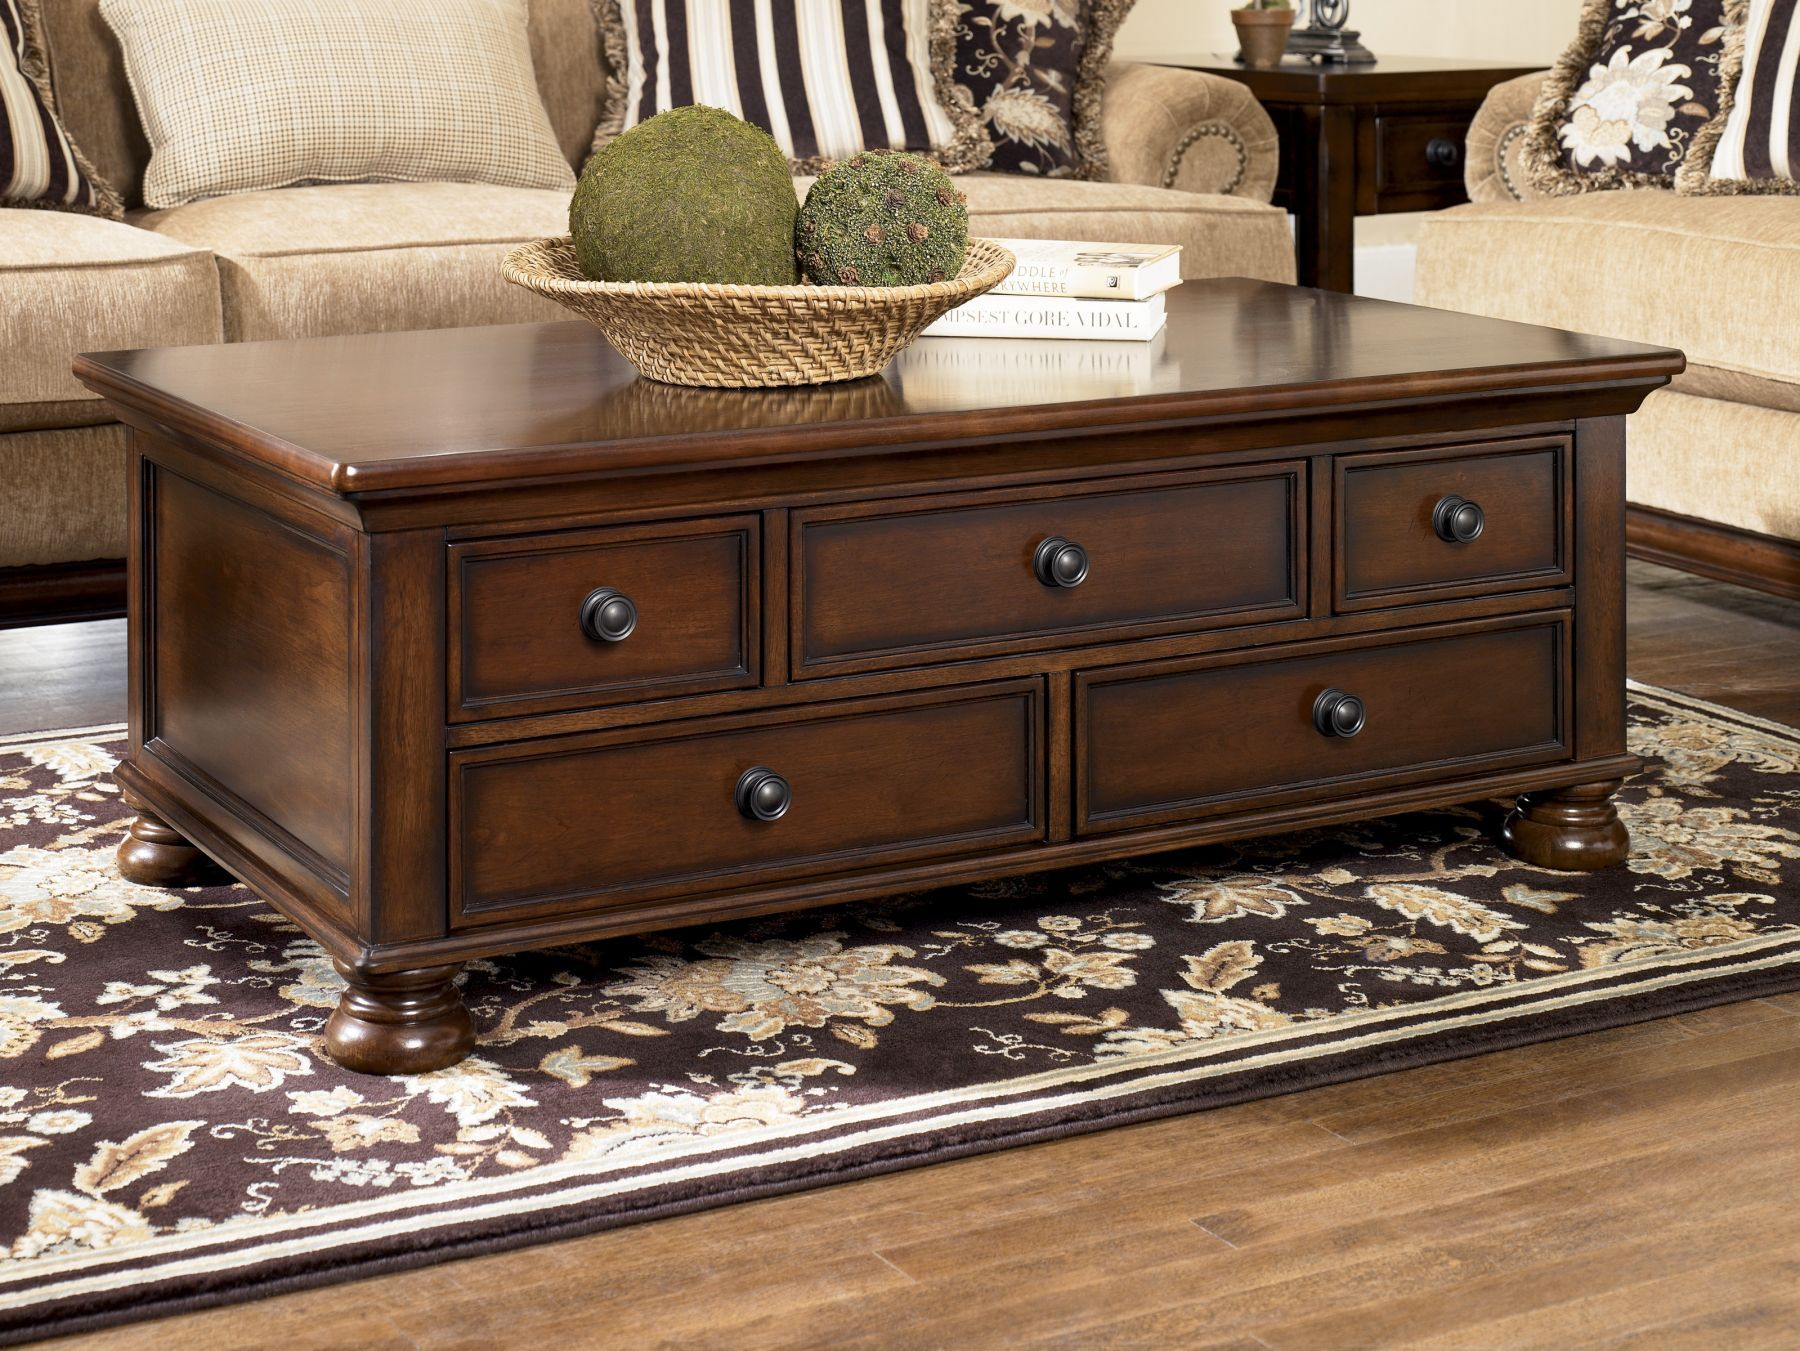 Mathis Brothers Coffee Table With Drawers Wood Living Room